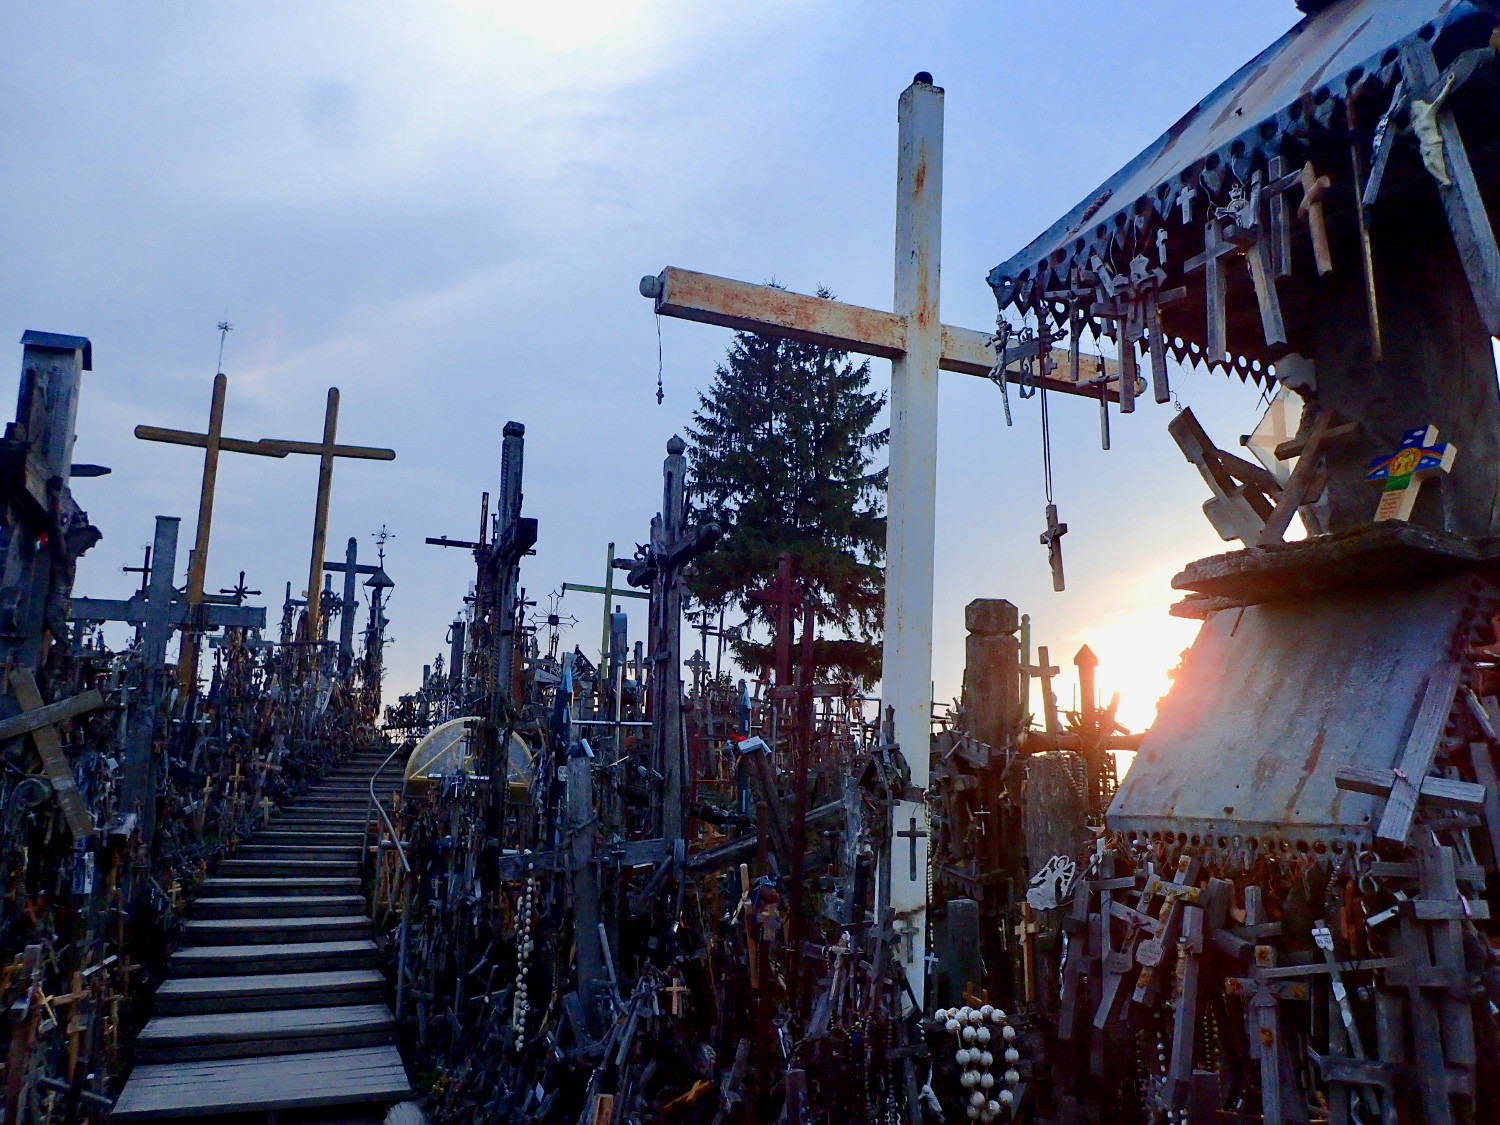 hill_of_crosses_pakruojis_manor6.jpg